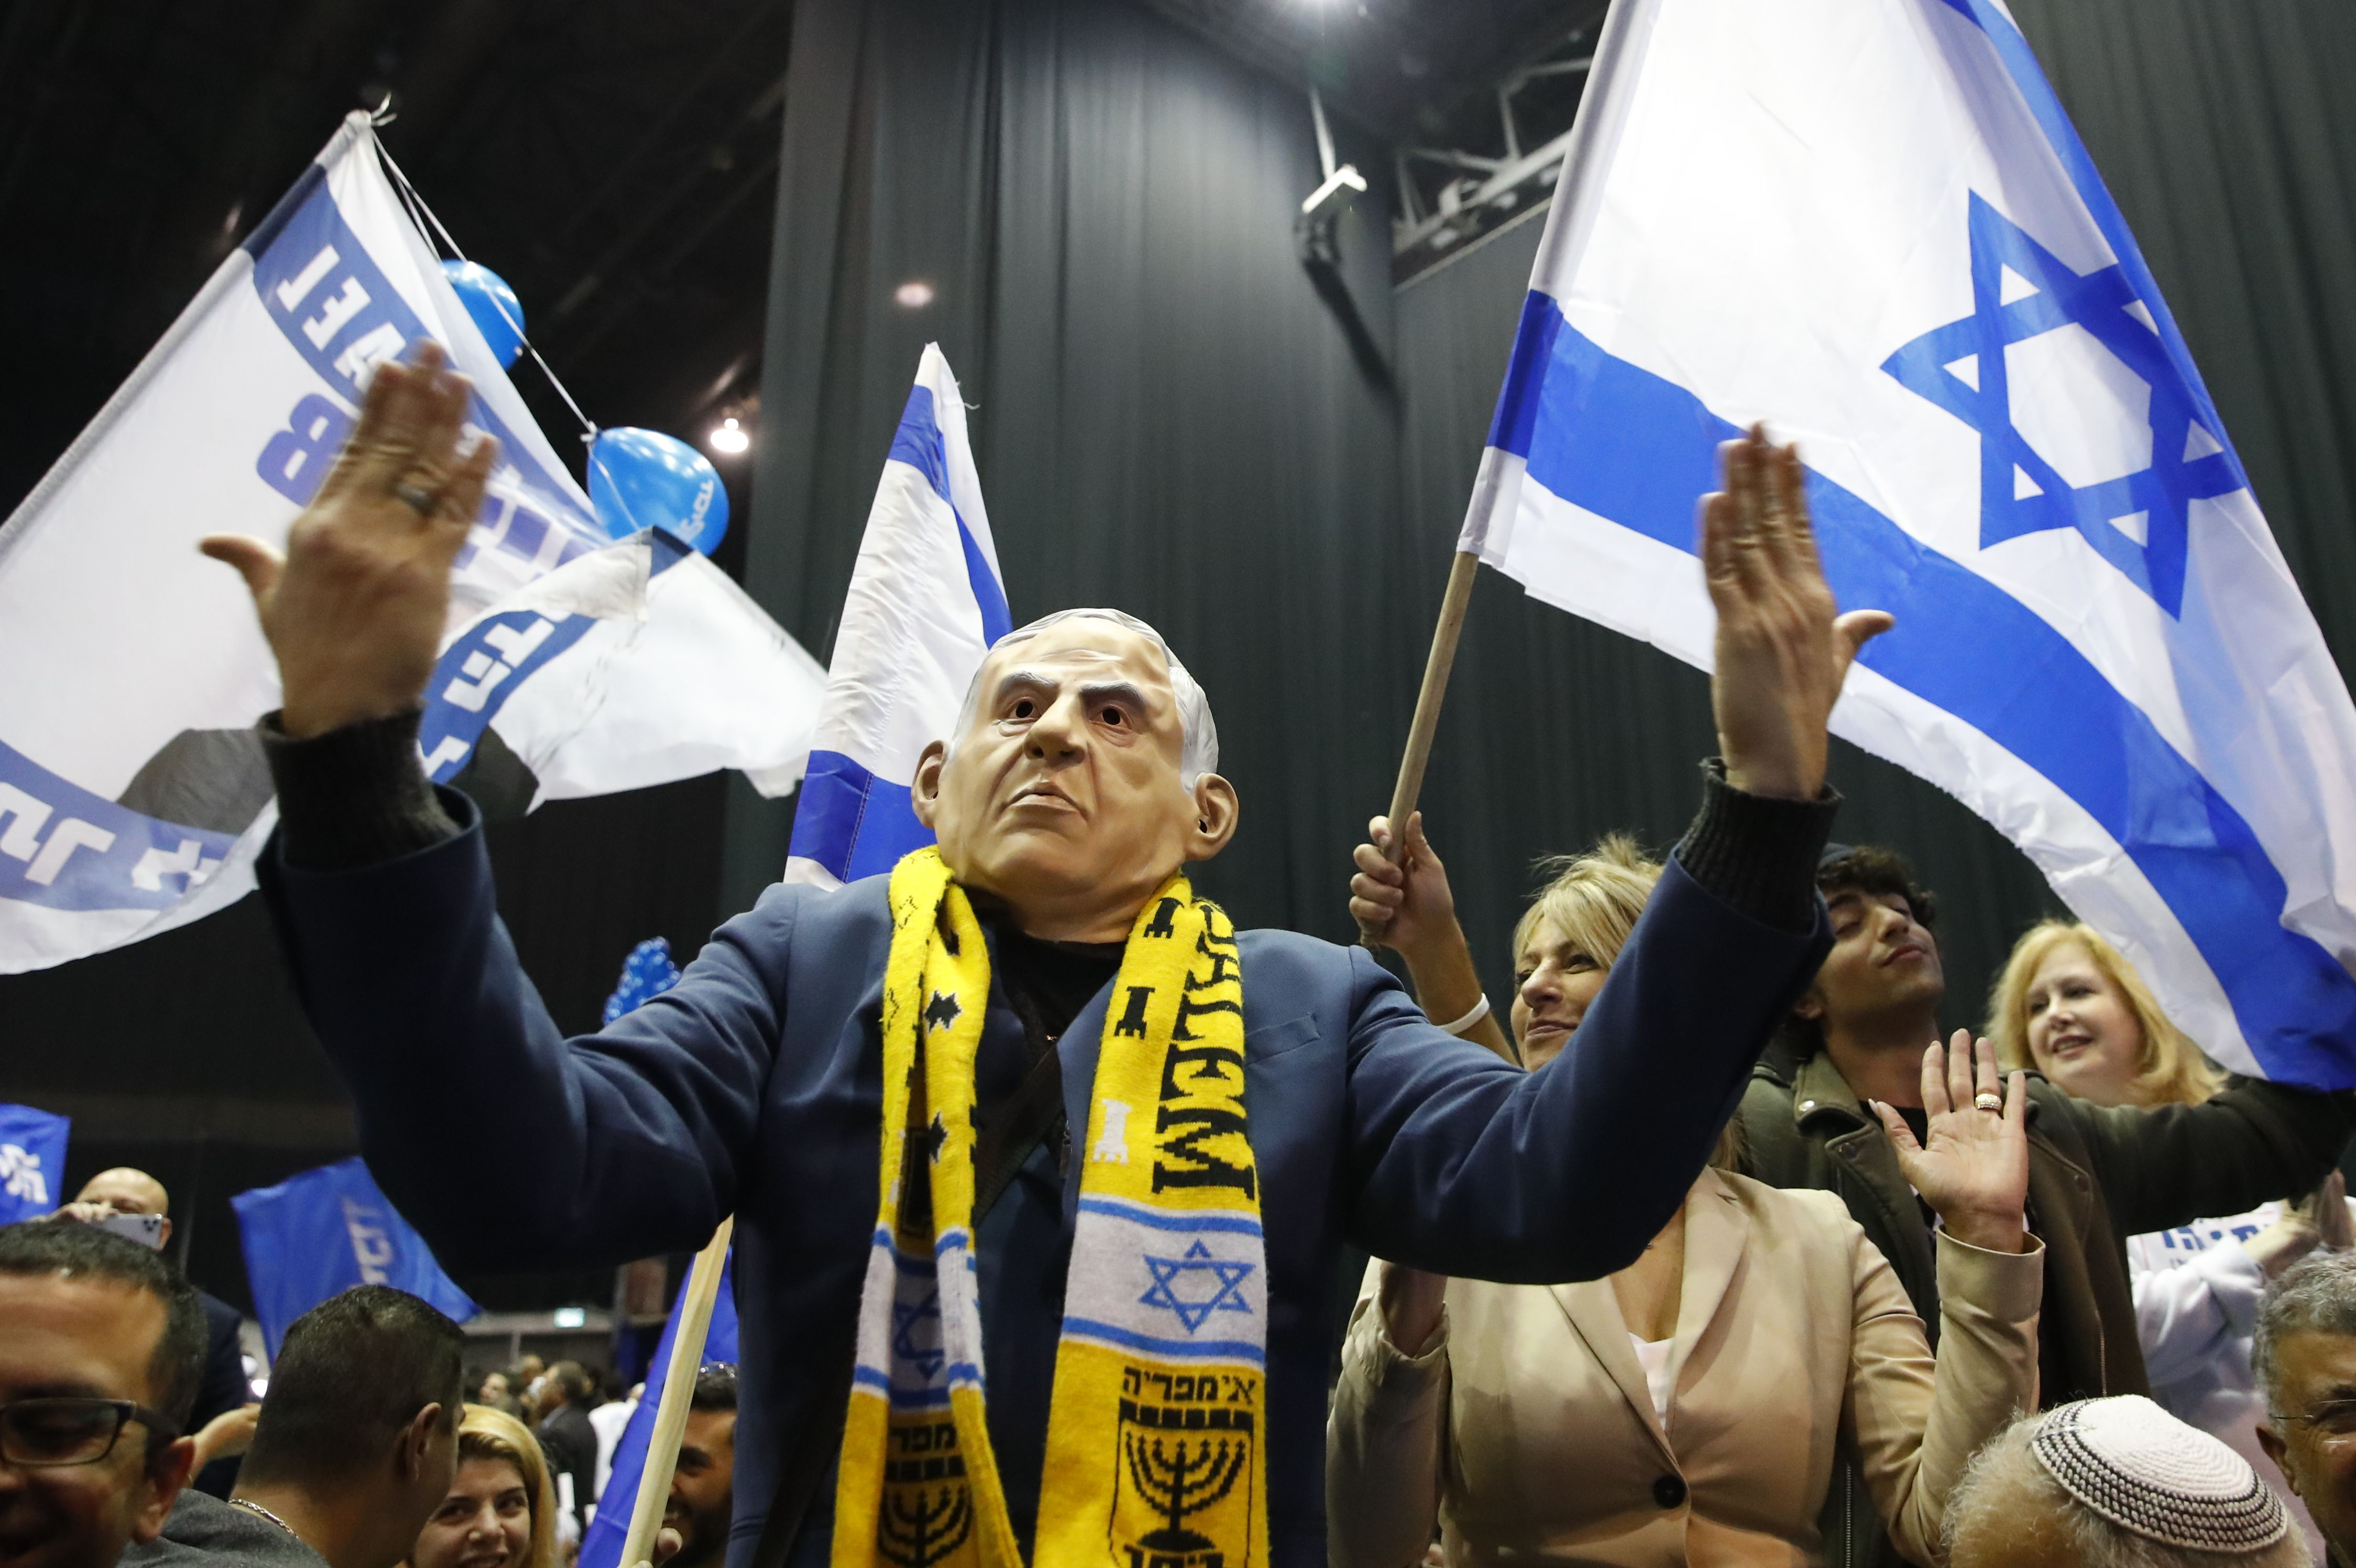 A man in a Benjamin Netanyahu face mask celebrates at the Likud's electoral headquarters. Jack Guez/AFP